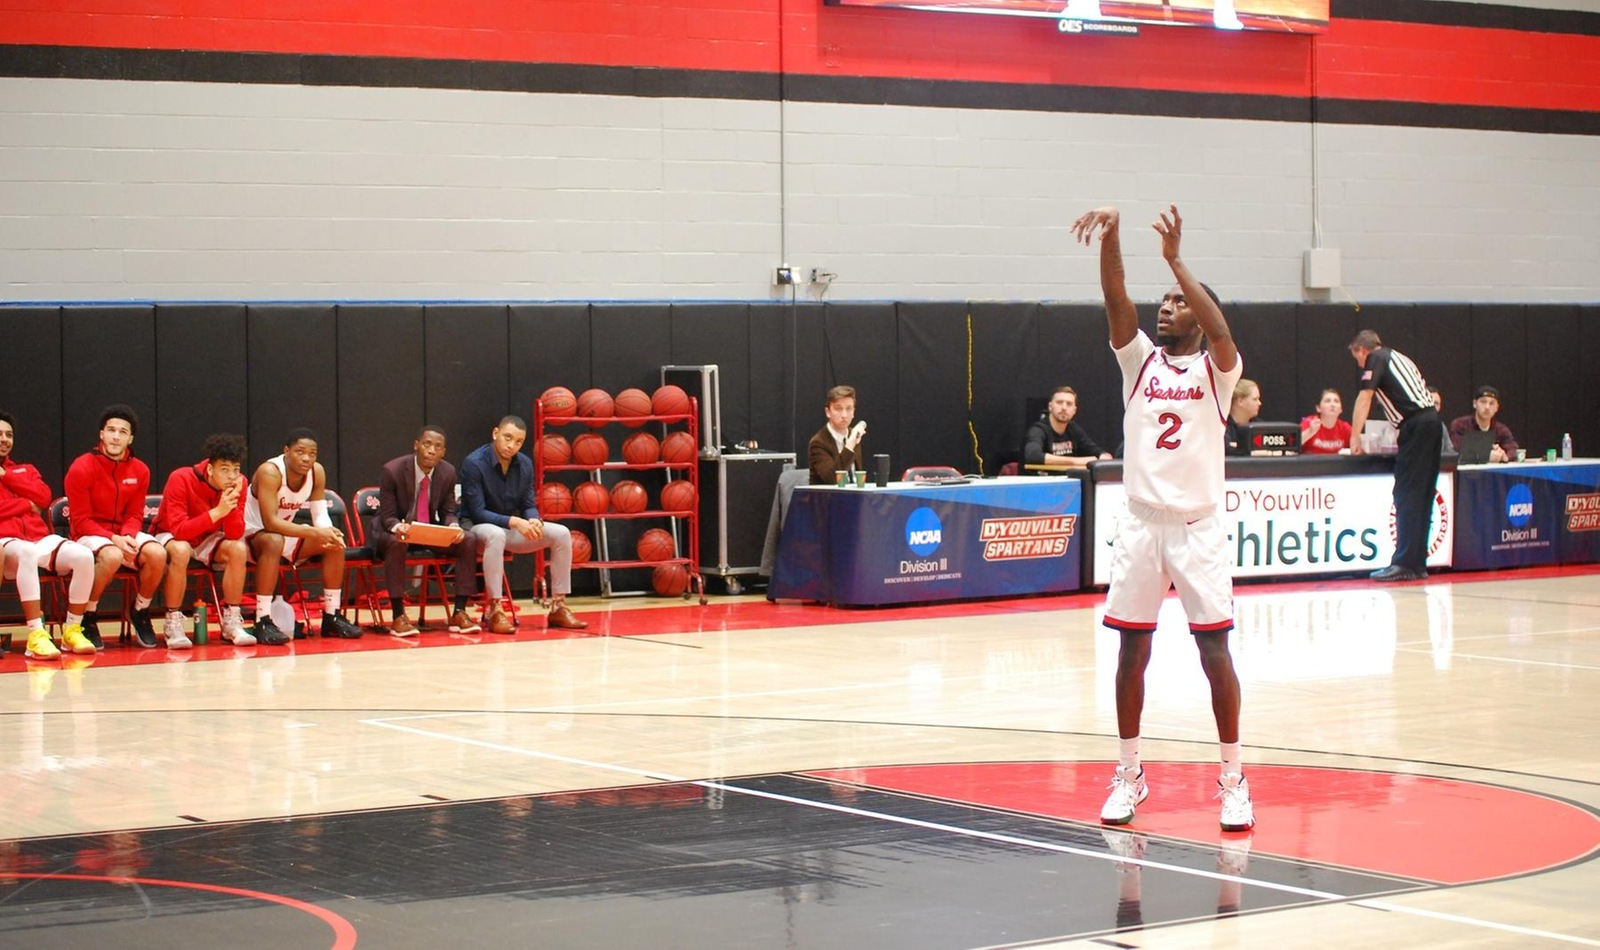 Men Go Toe-to-Toe With First Place Redhawks in Loss